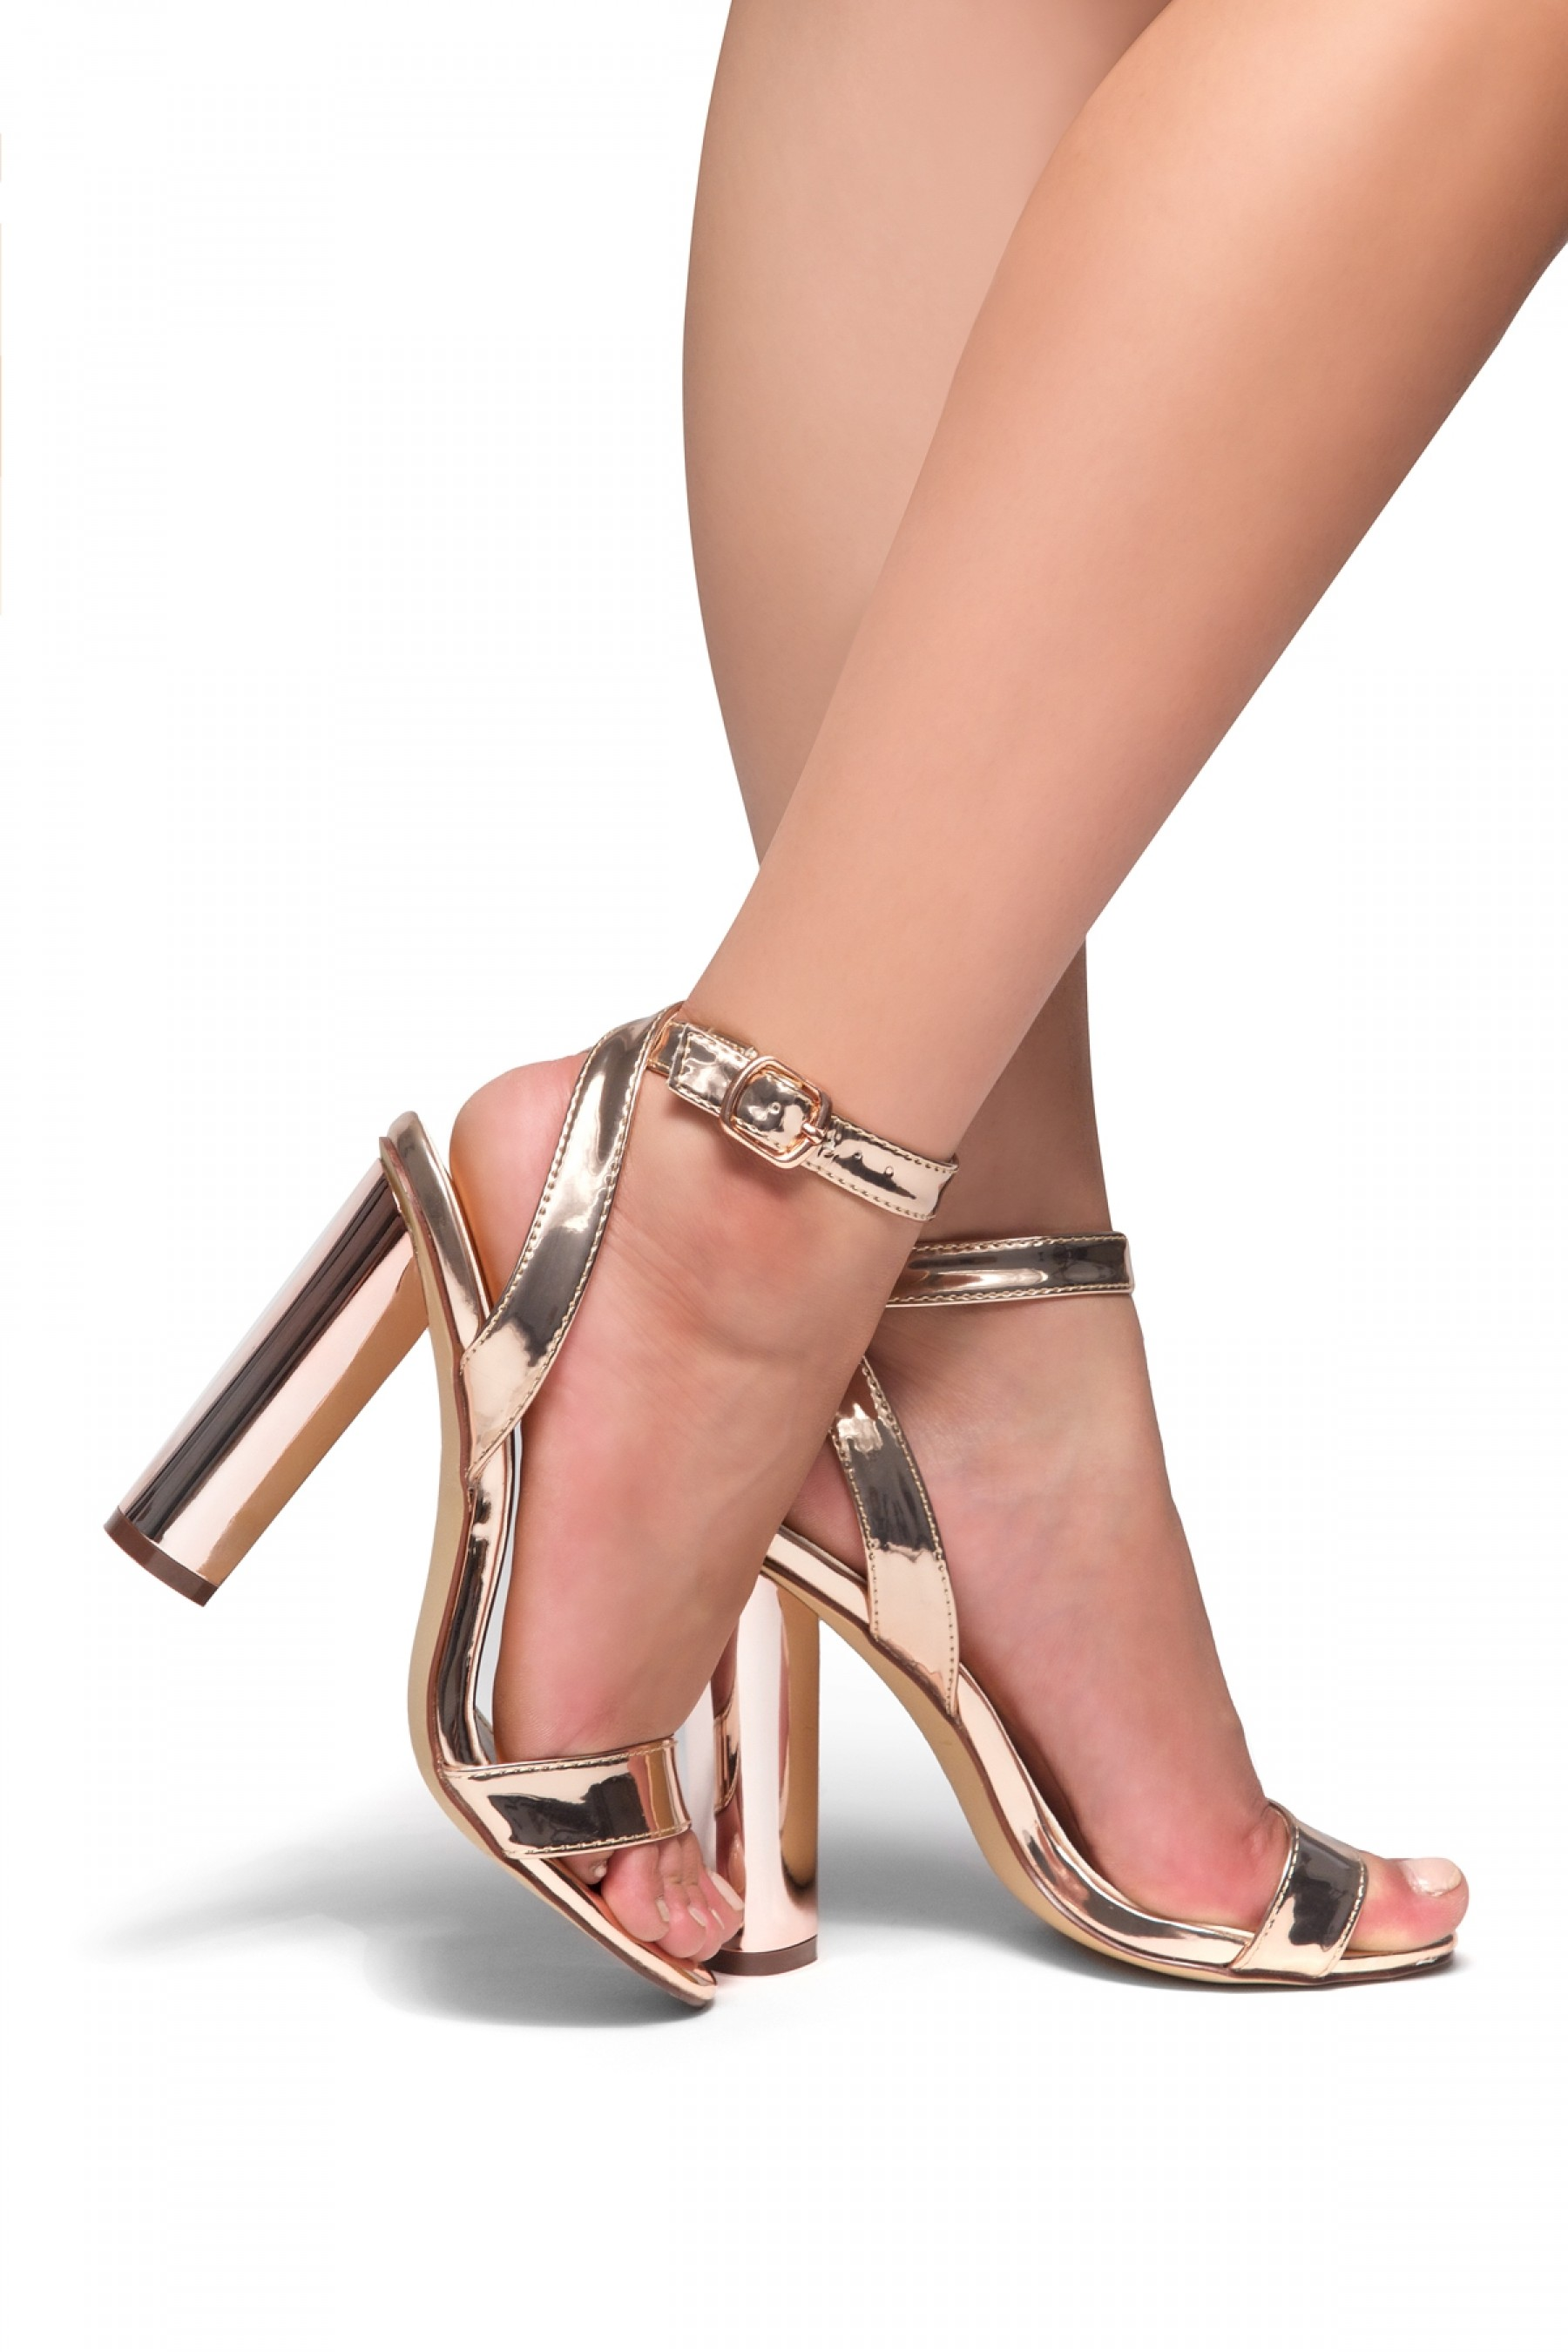 construction stiletto ankle herstyle strap anklet heel gladiator villarosa rose gold